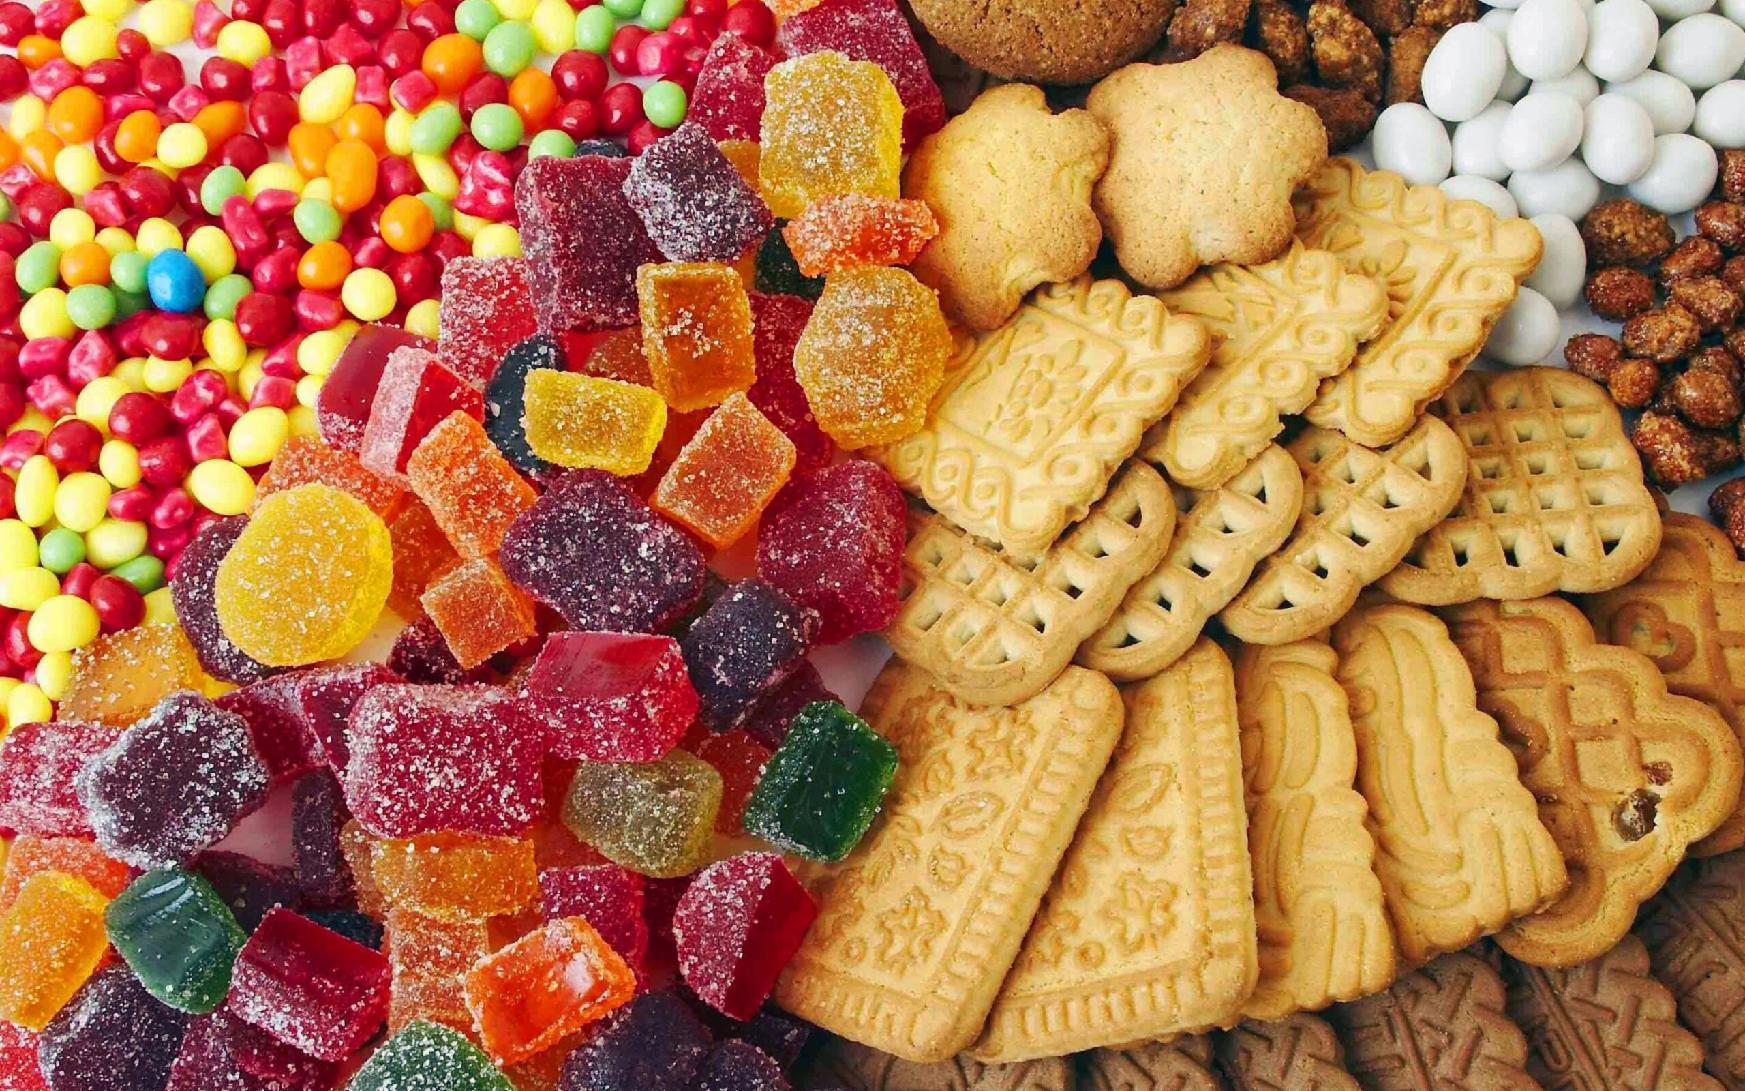 What are your favourite sweets?